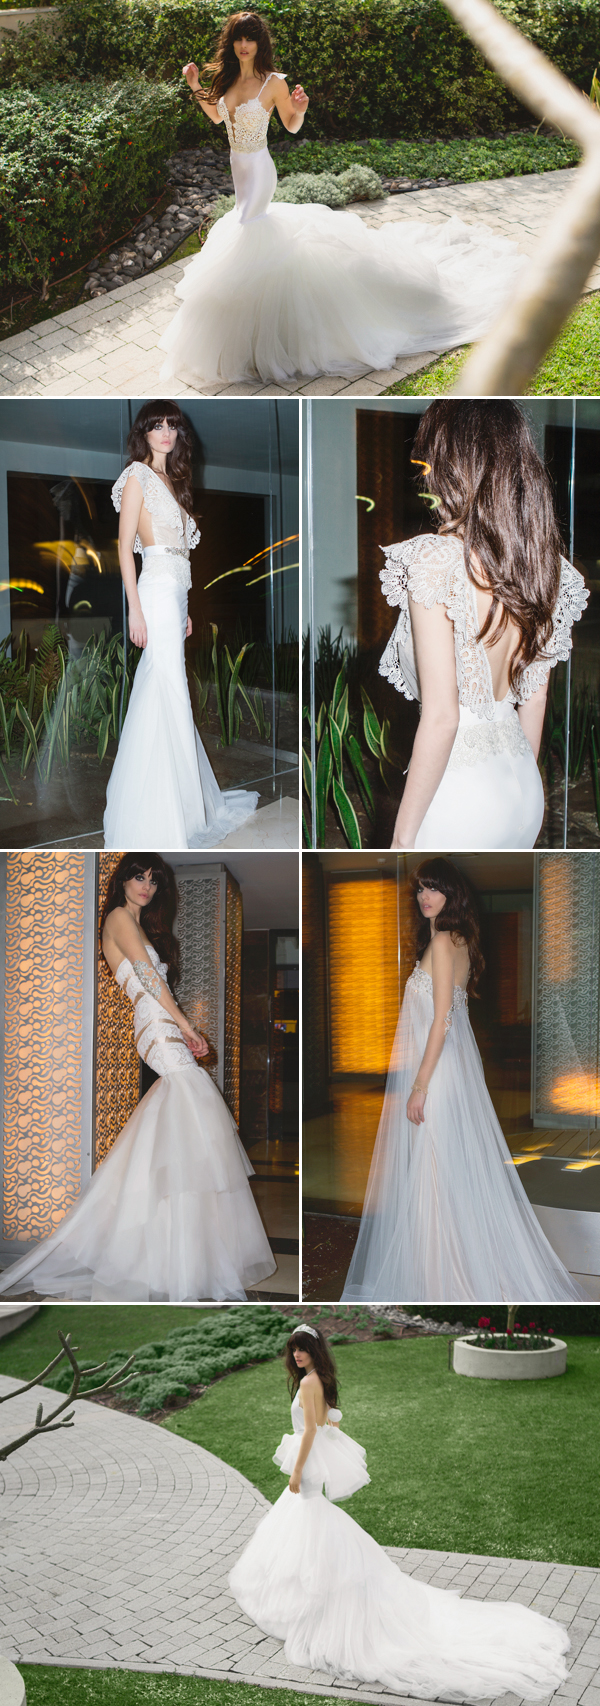 free wedding dresses Praise Wedding You are based in Israel does the culture influence your creations in any way